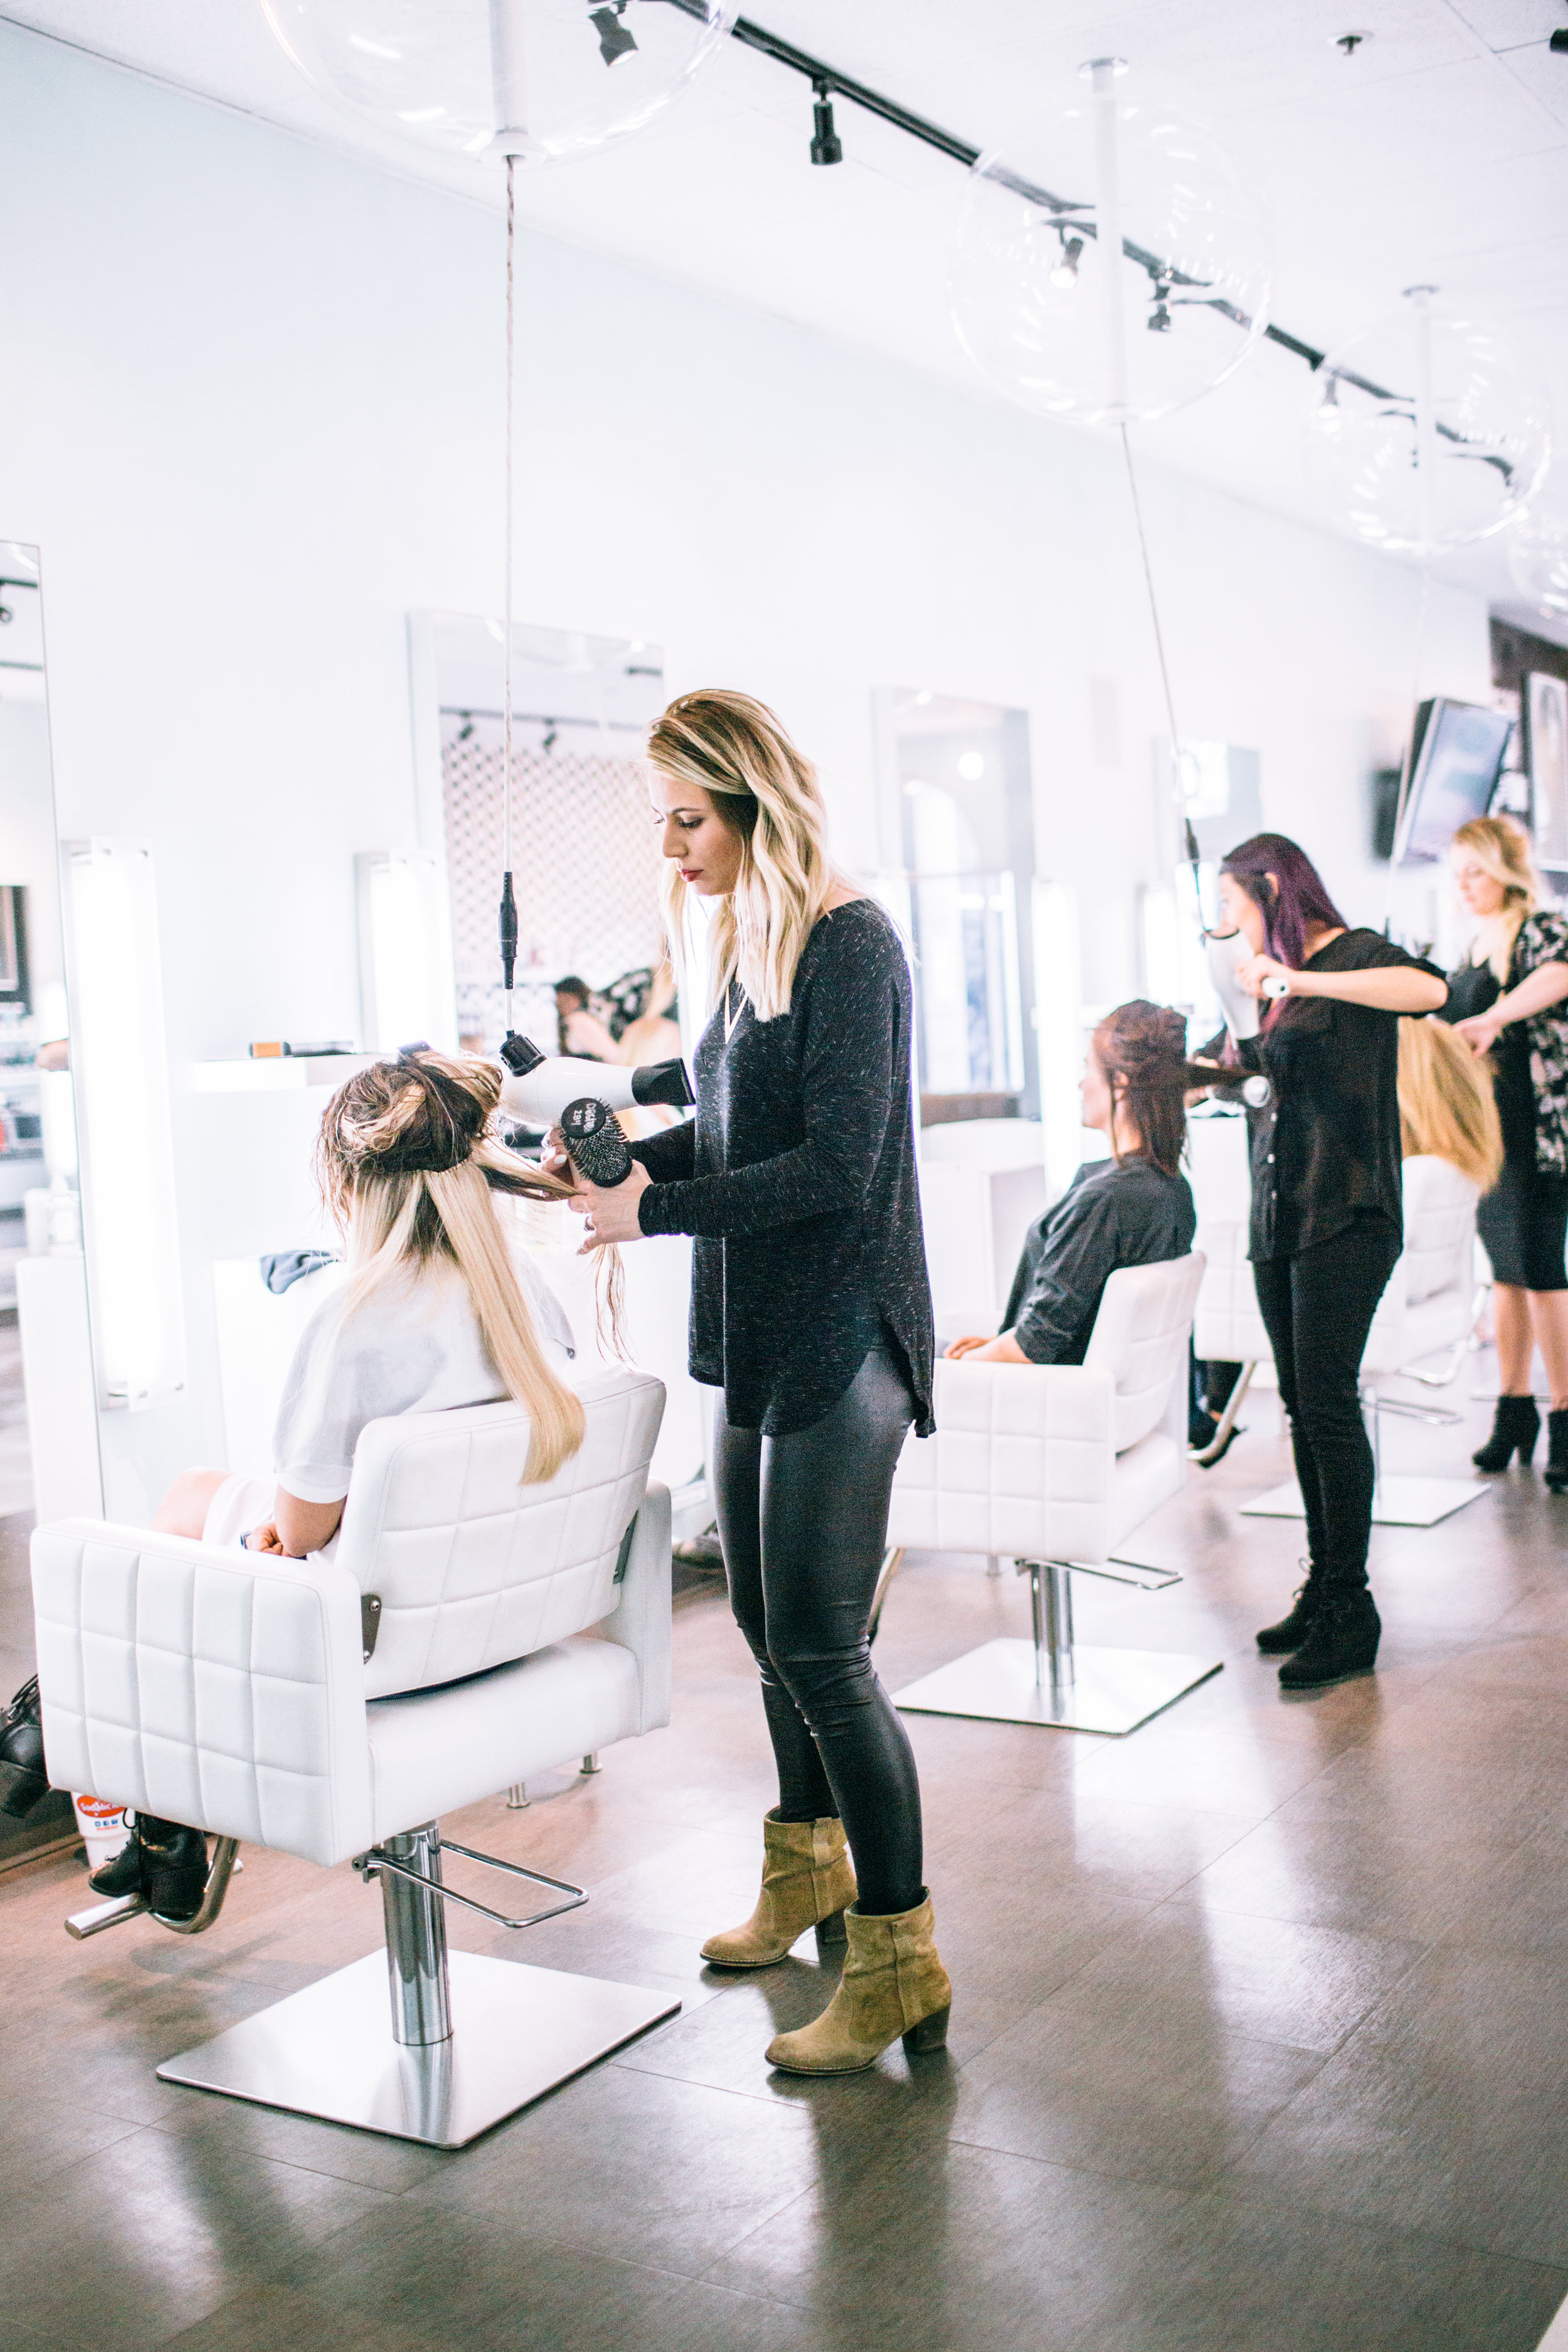 services we offer - At h2blow, we have beauty covered. Our blowouts start with a wash using premium products, include a luxurious scalp massage, and ends with a professionally styled look that lasts for days. We offer a range of treatment add ons and styling options such as braids or updos. Complete the look with a glowing makeup application, hairtalk hair extensions, brow and lash tinting, or facial waxing. Need a longer lasting style? Read up on our Hairtalk Hair Extensions and customizable Brazilian blowouts.Learn more ➝